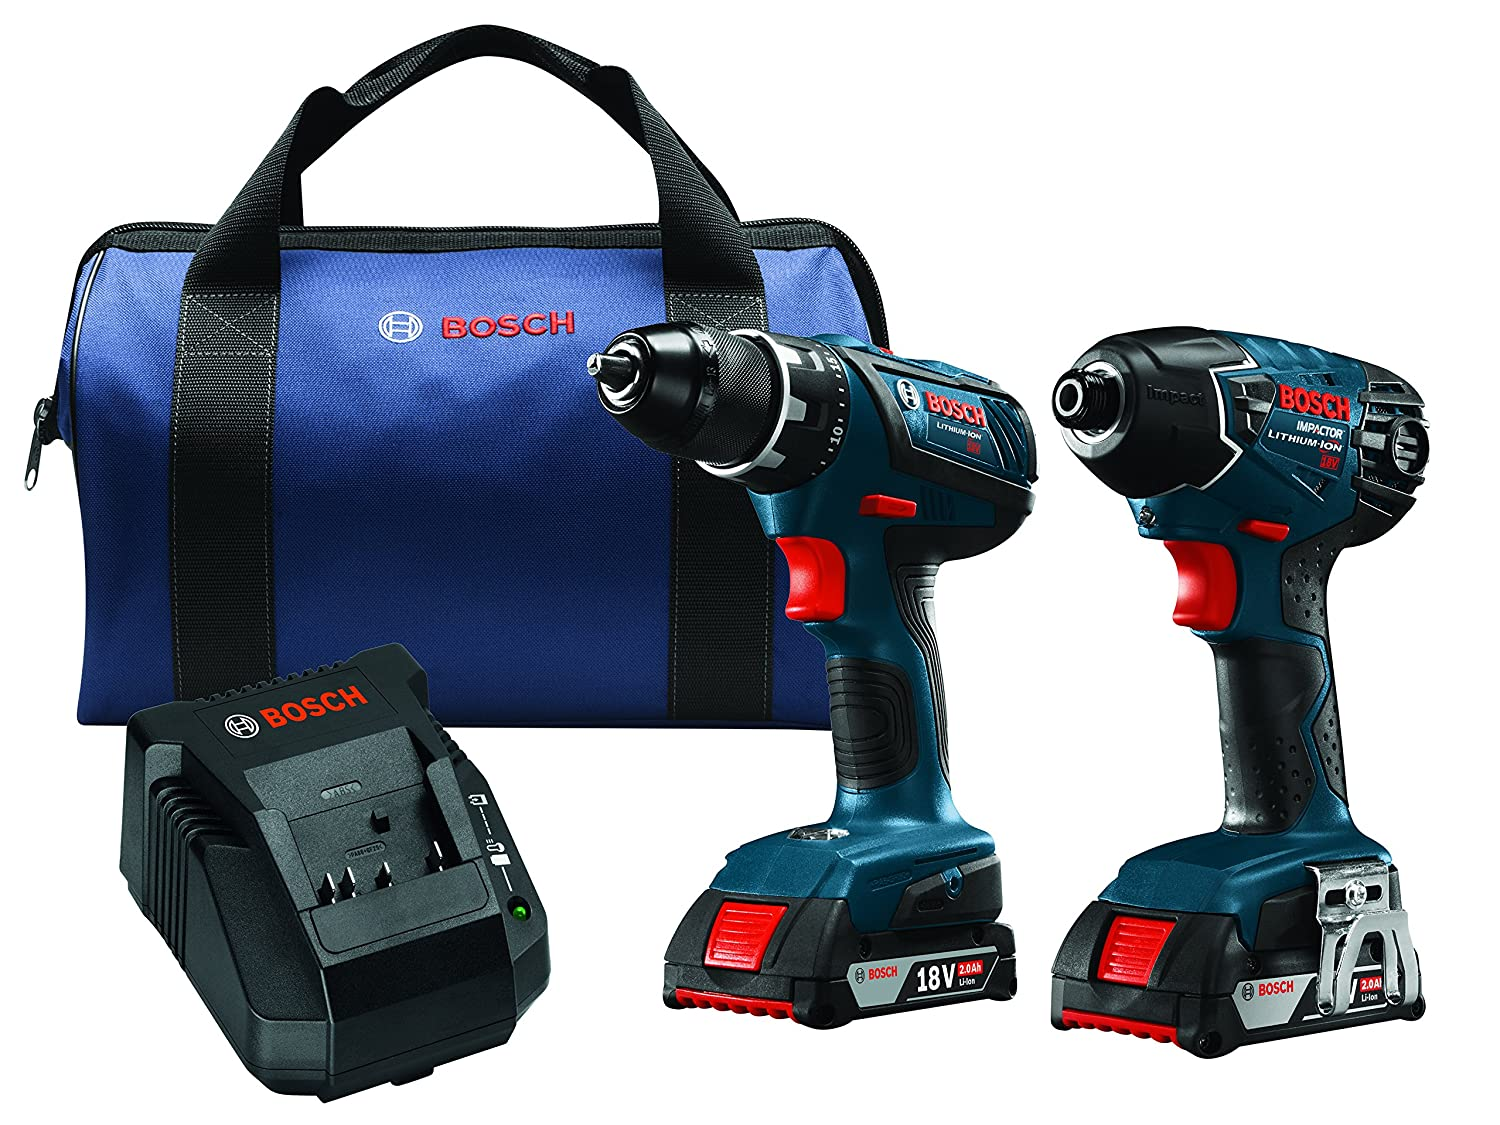 916dGdvOlqL._SL1500_ Bosch vs Makita: Which Demolition Hammer Is Best?